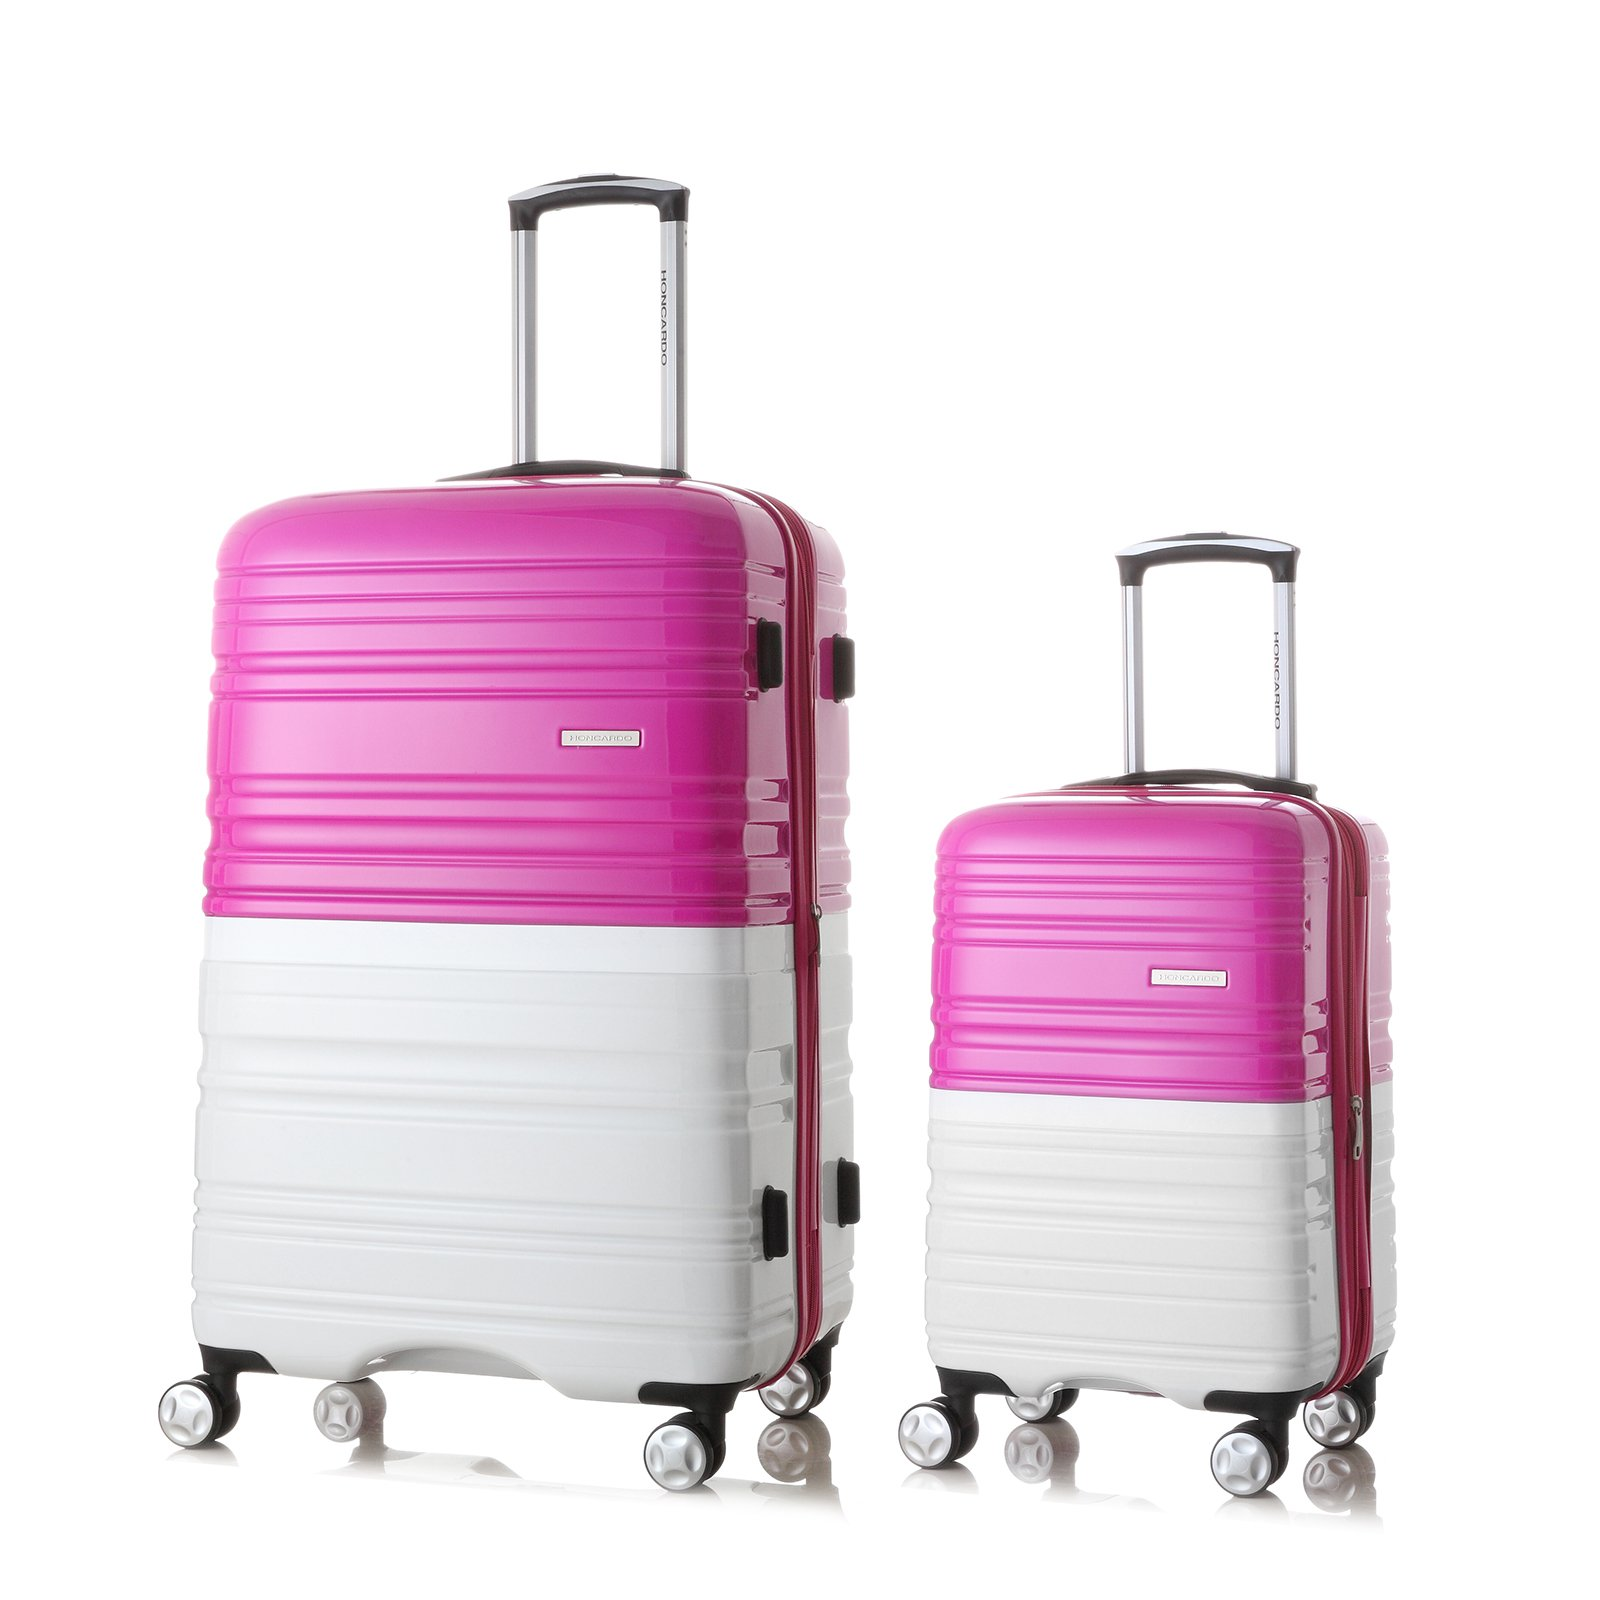 2 Pack Love Box[Boy and girl,daddy and boy,mommy and girl] 20''-28'' Luggage 360° Spinner Wheels Trolley Suitcase TSALock Travel Carryon Bag Hardside Travelhouse (Pink+White)